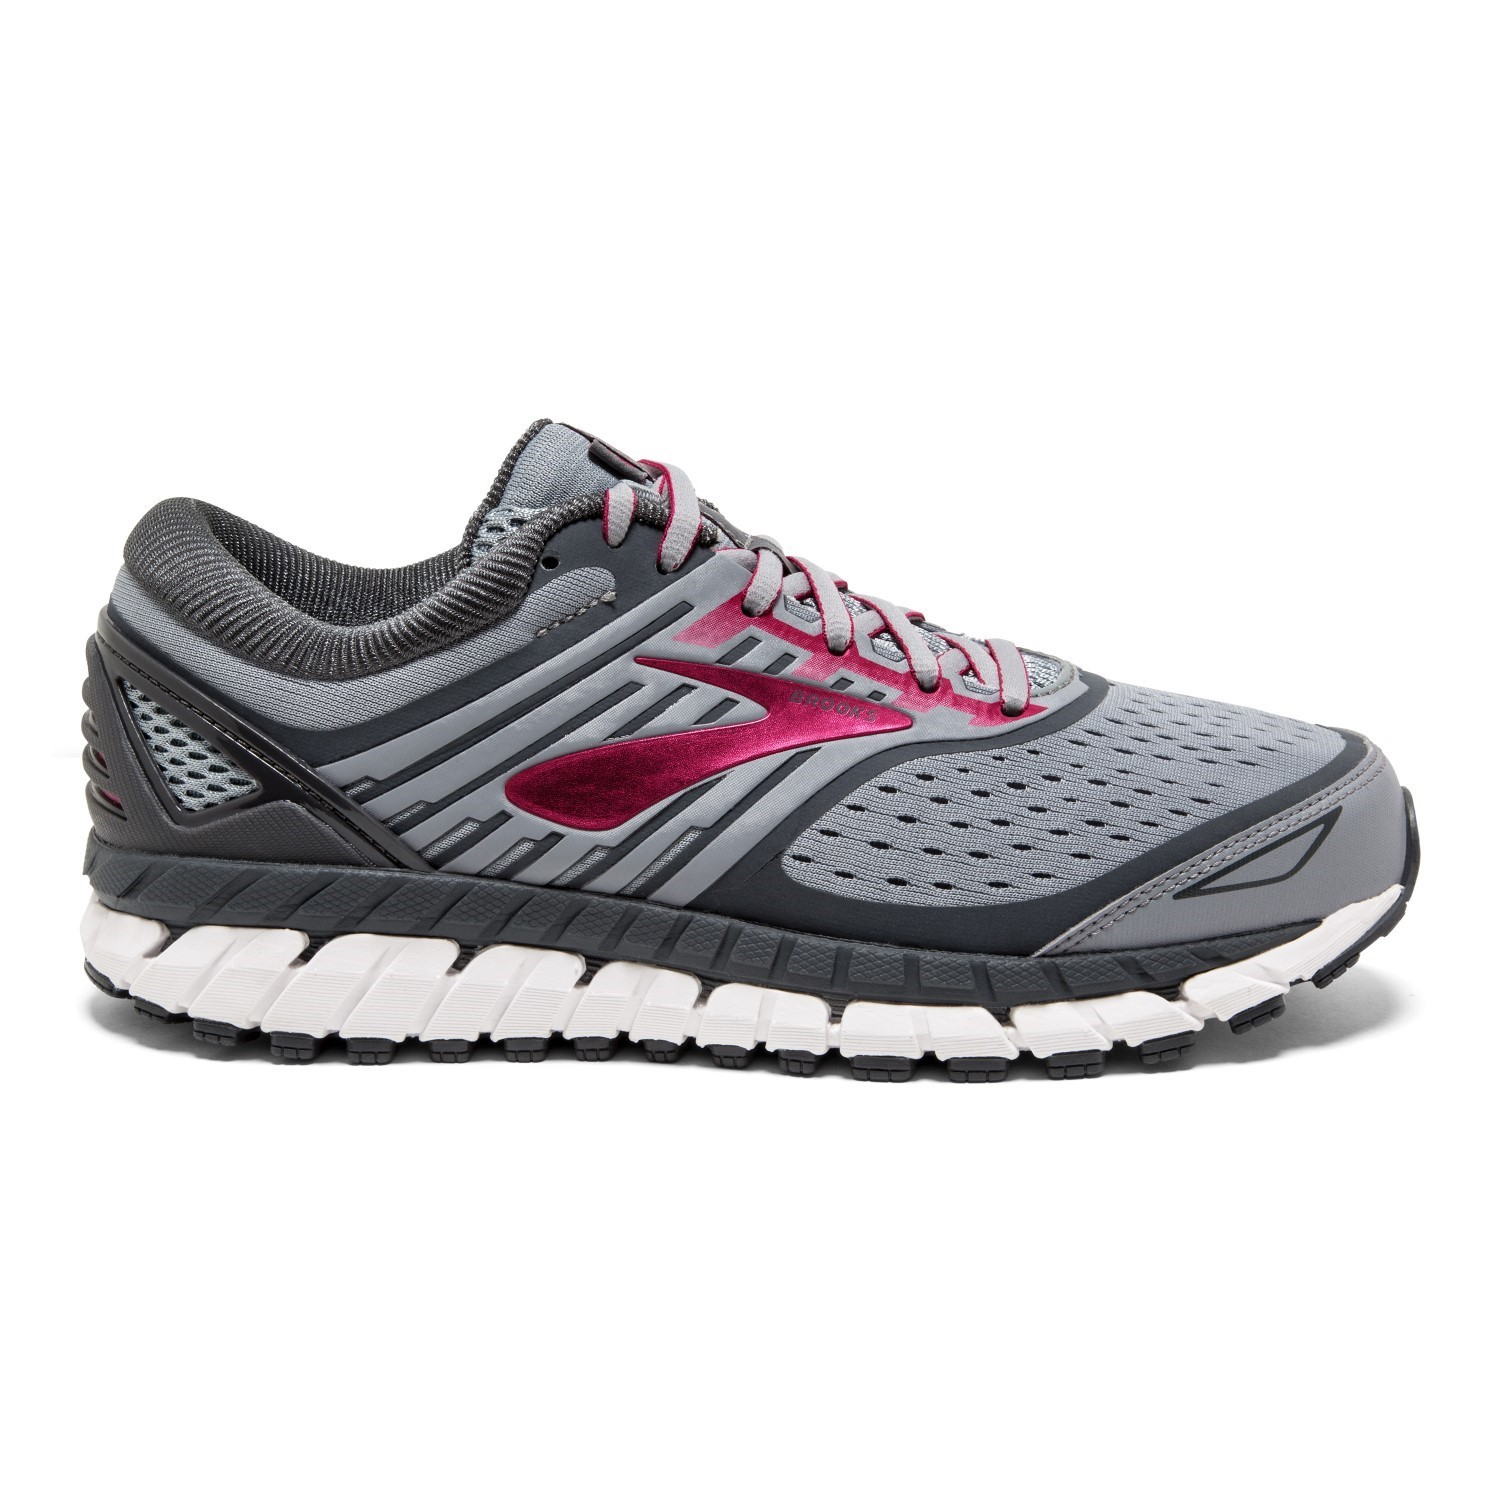 ad1b4426a4e Brooks Ariel 18 - Womens Running Shoes - Grey Pink